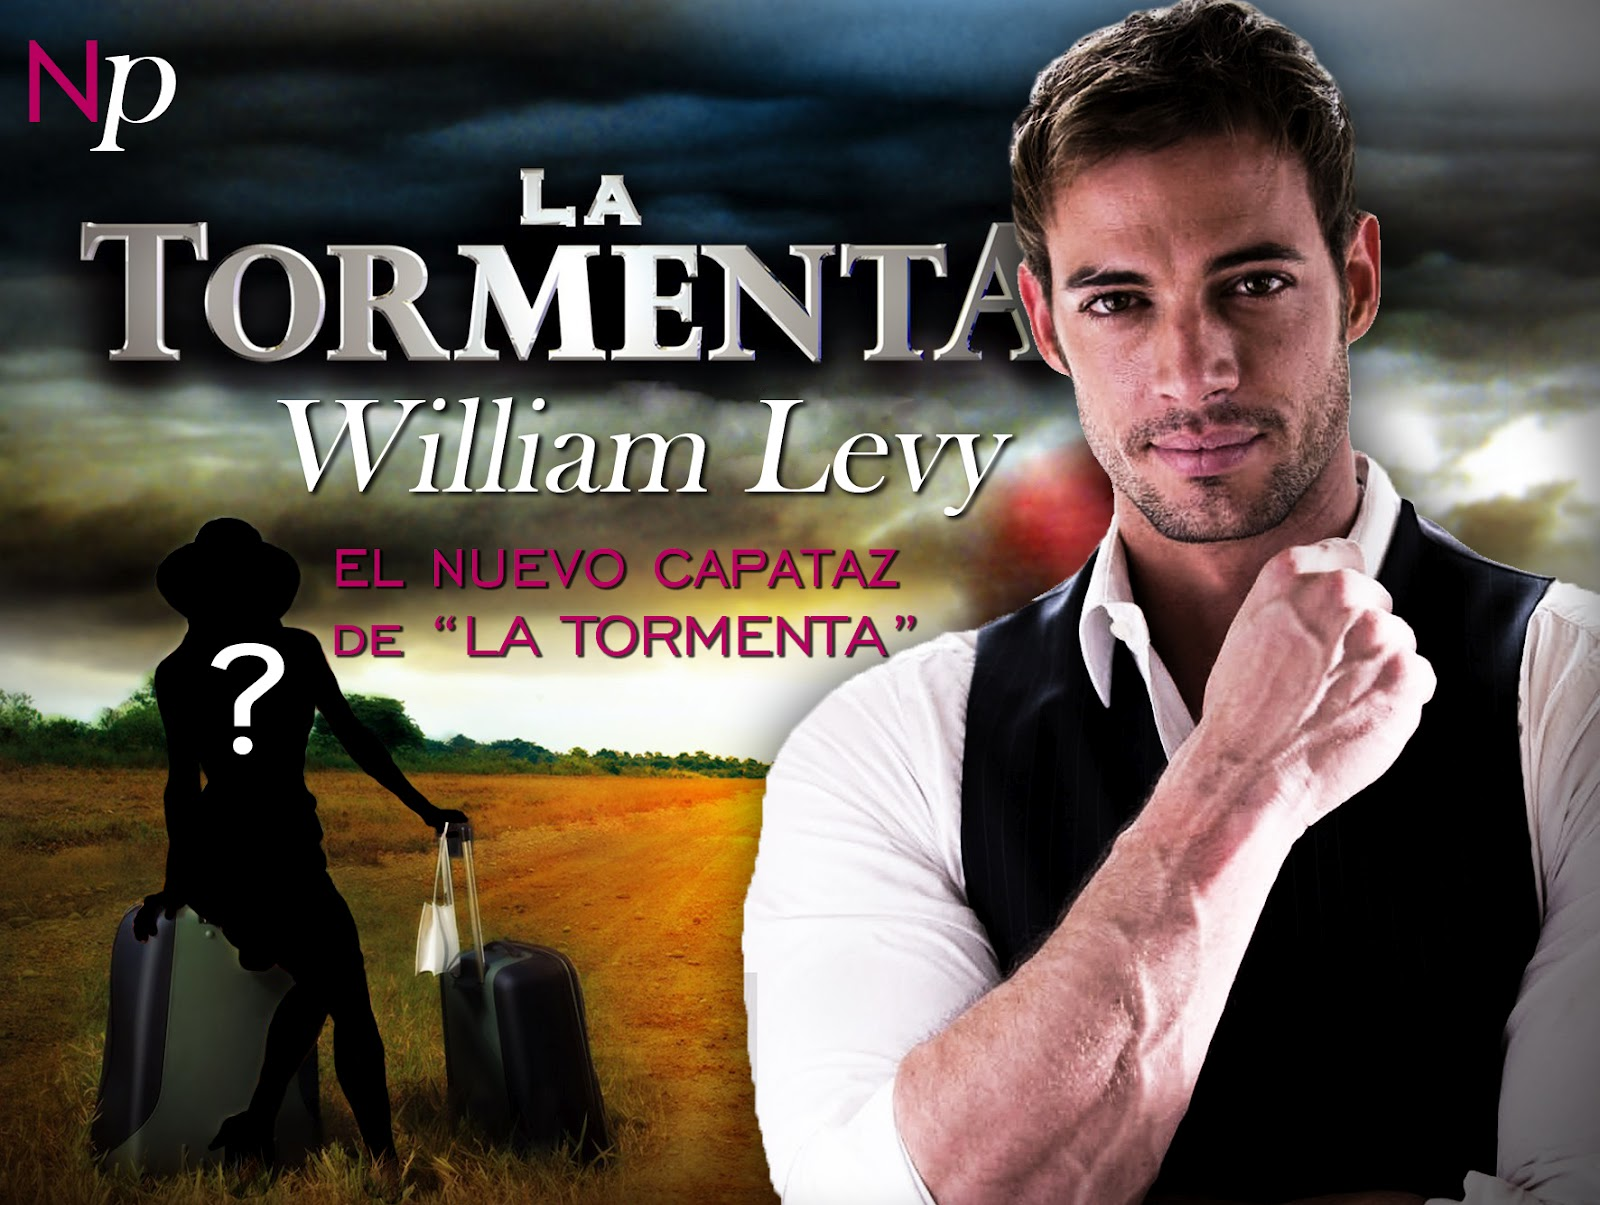 La Tormenta Telenovela William Levy